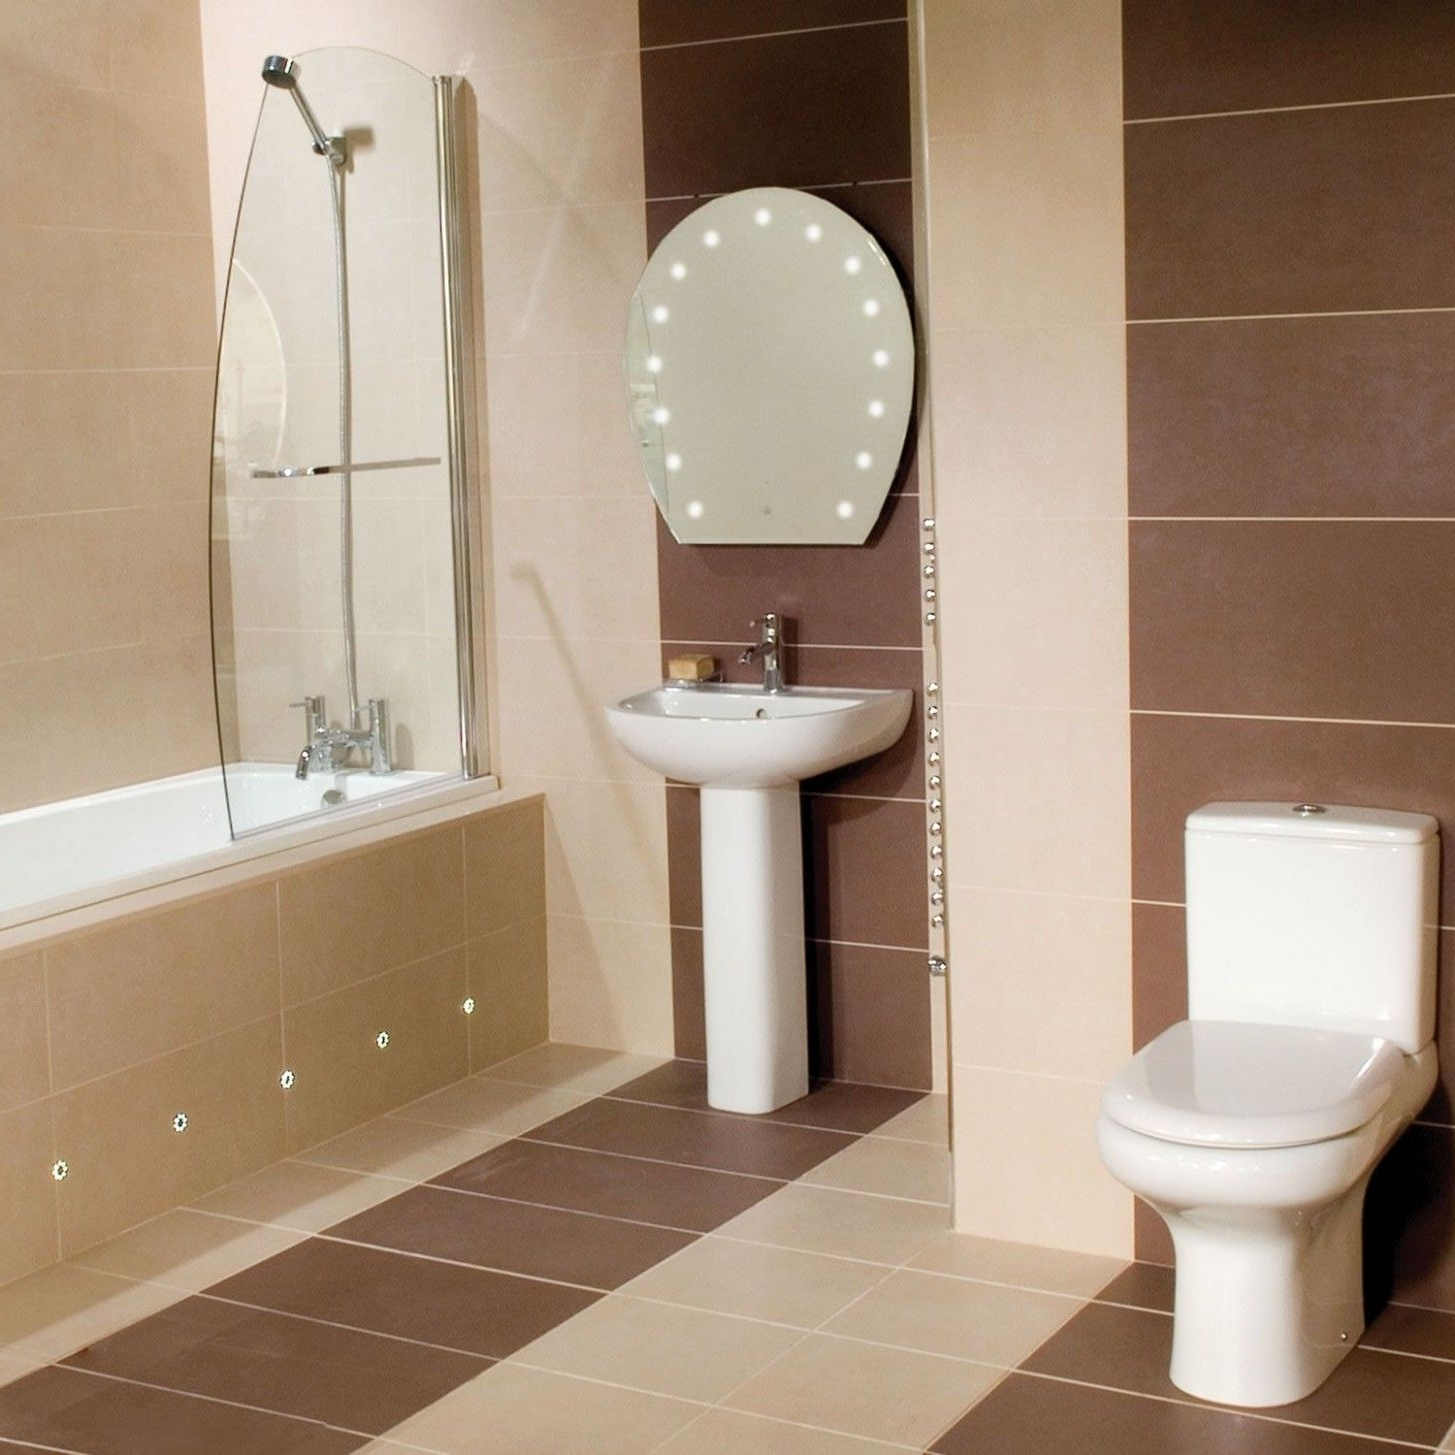 Bathroom Tiles Images Gallery In India | Simple Bathroom Bathroom Tiles For Small Bathrooms India